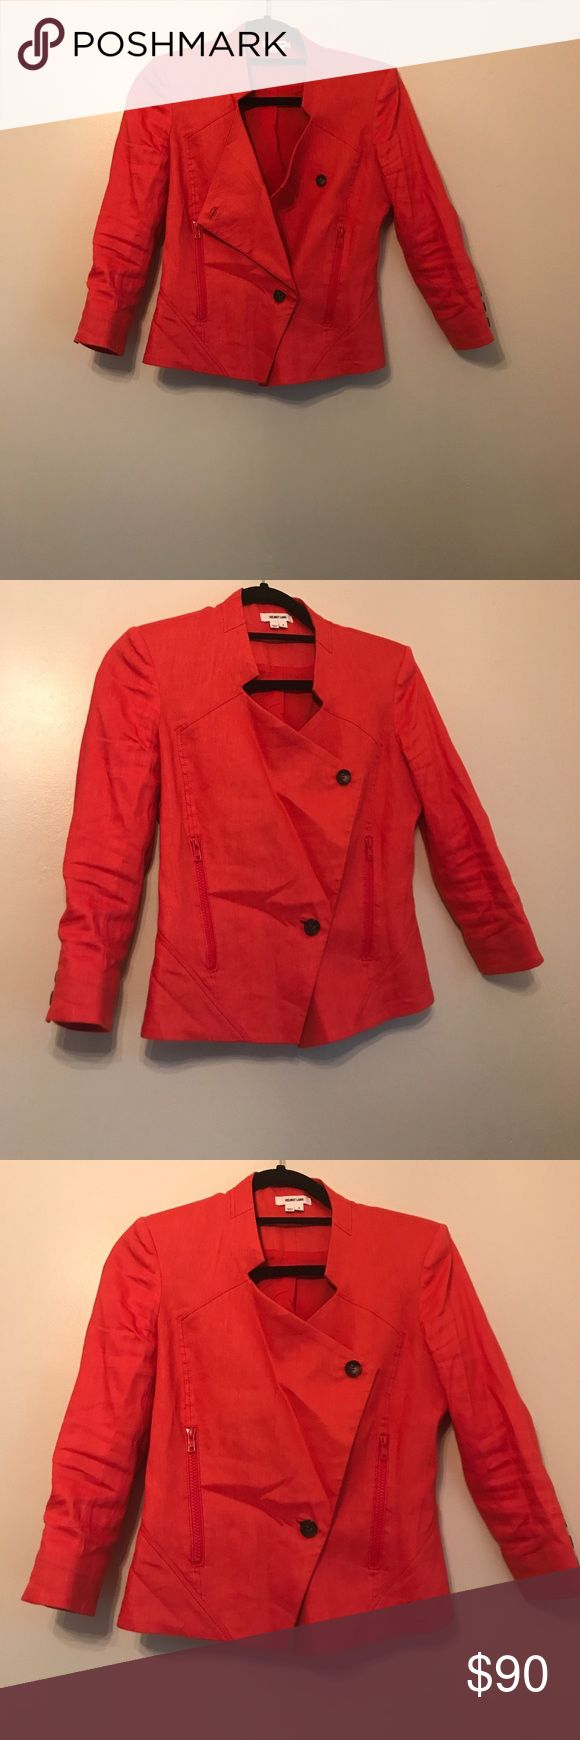 NWOT HELMUT LANG BLAZER HELMUT LANG BLAZER. This bright color definitely is a statement piece. Flawless condition Helmut Lang Jackets & Coats Blazers